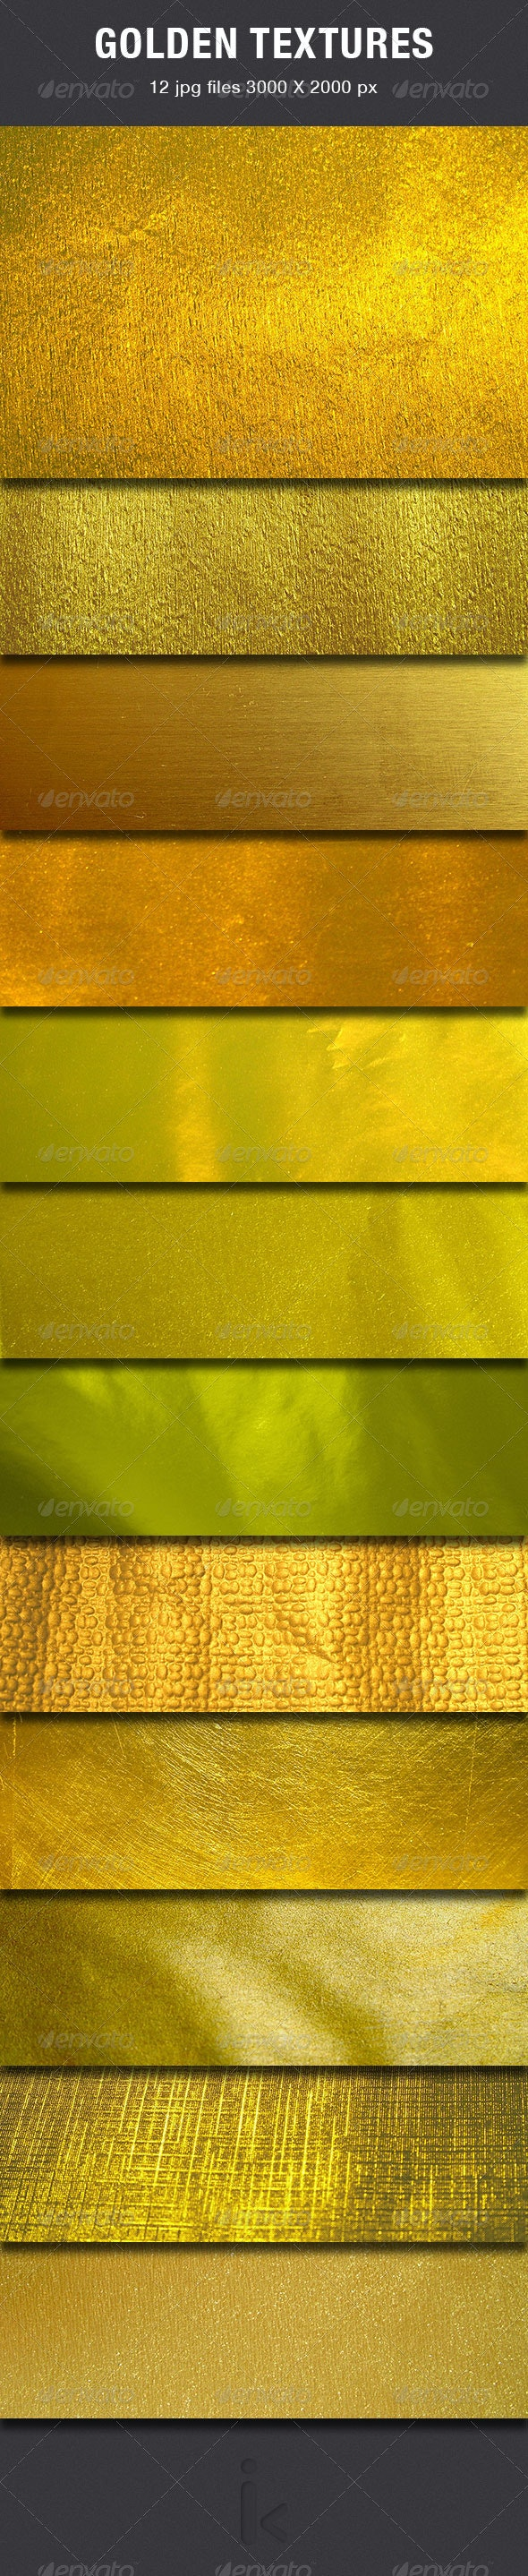 Gold Textures - Abstract Textures